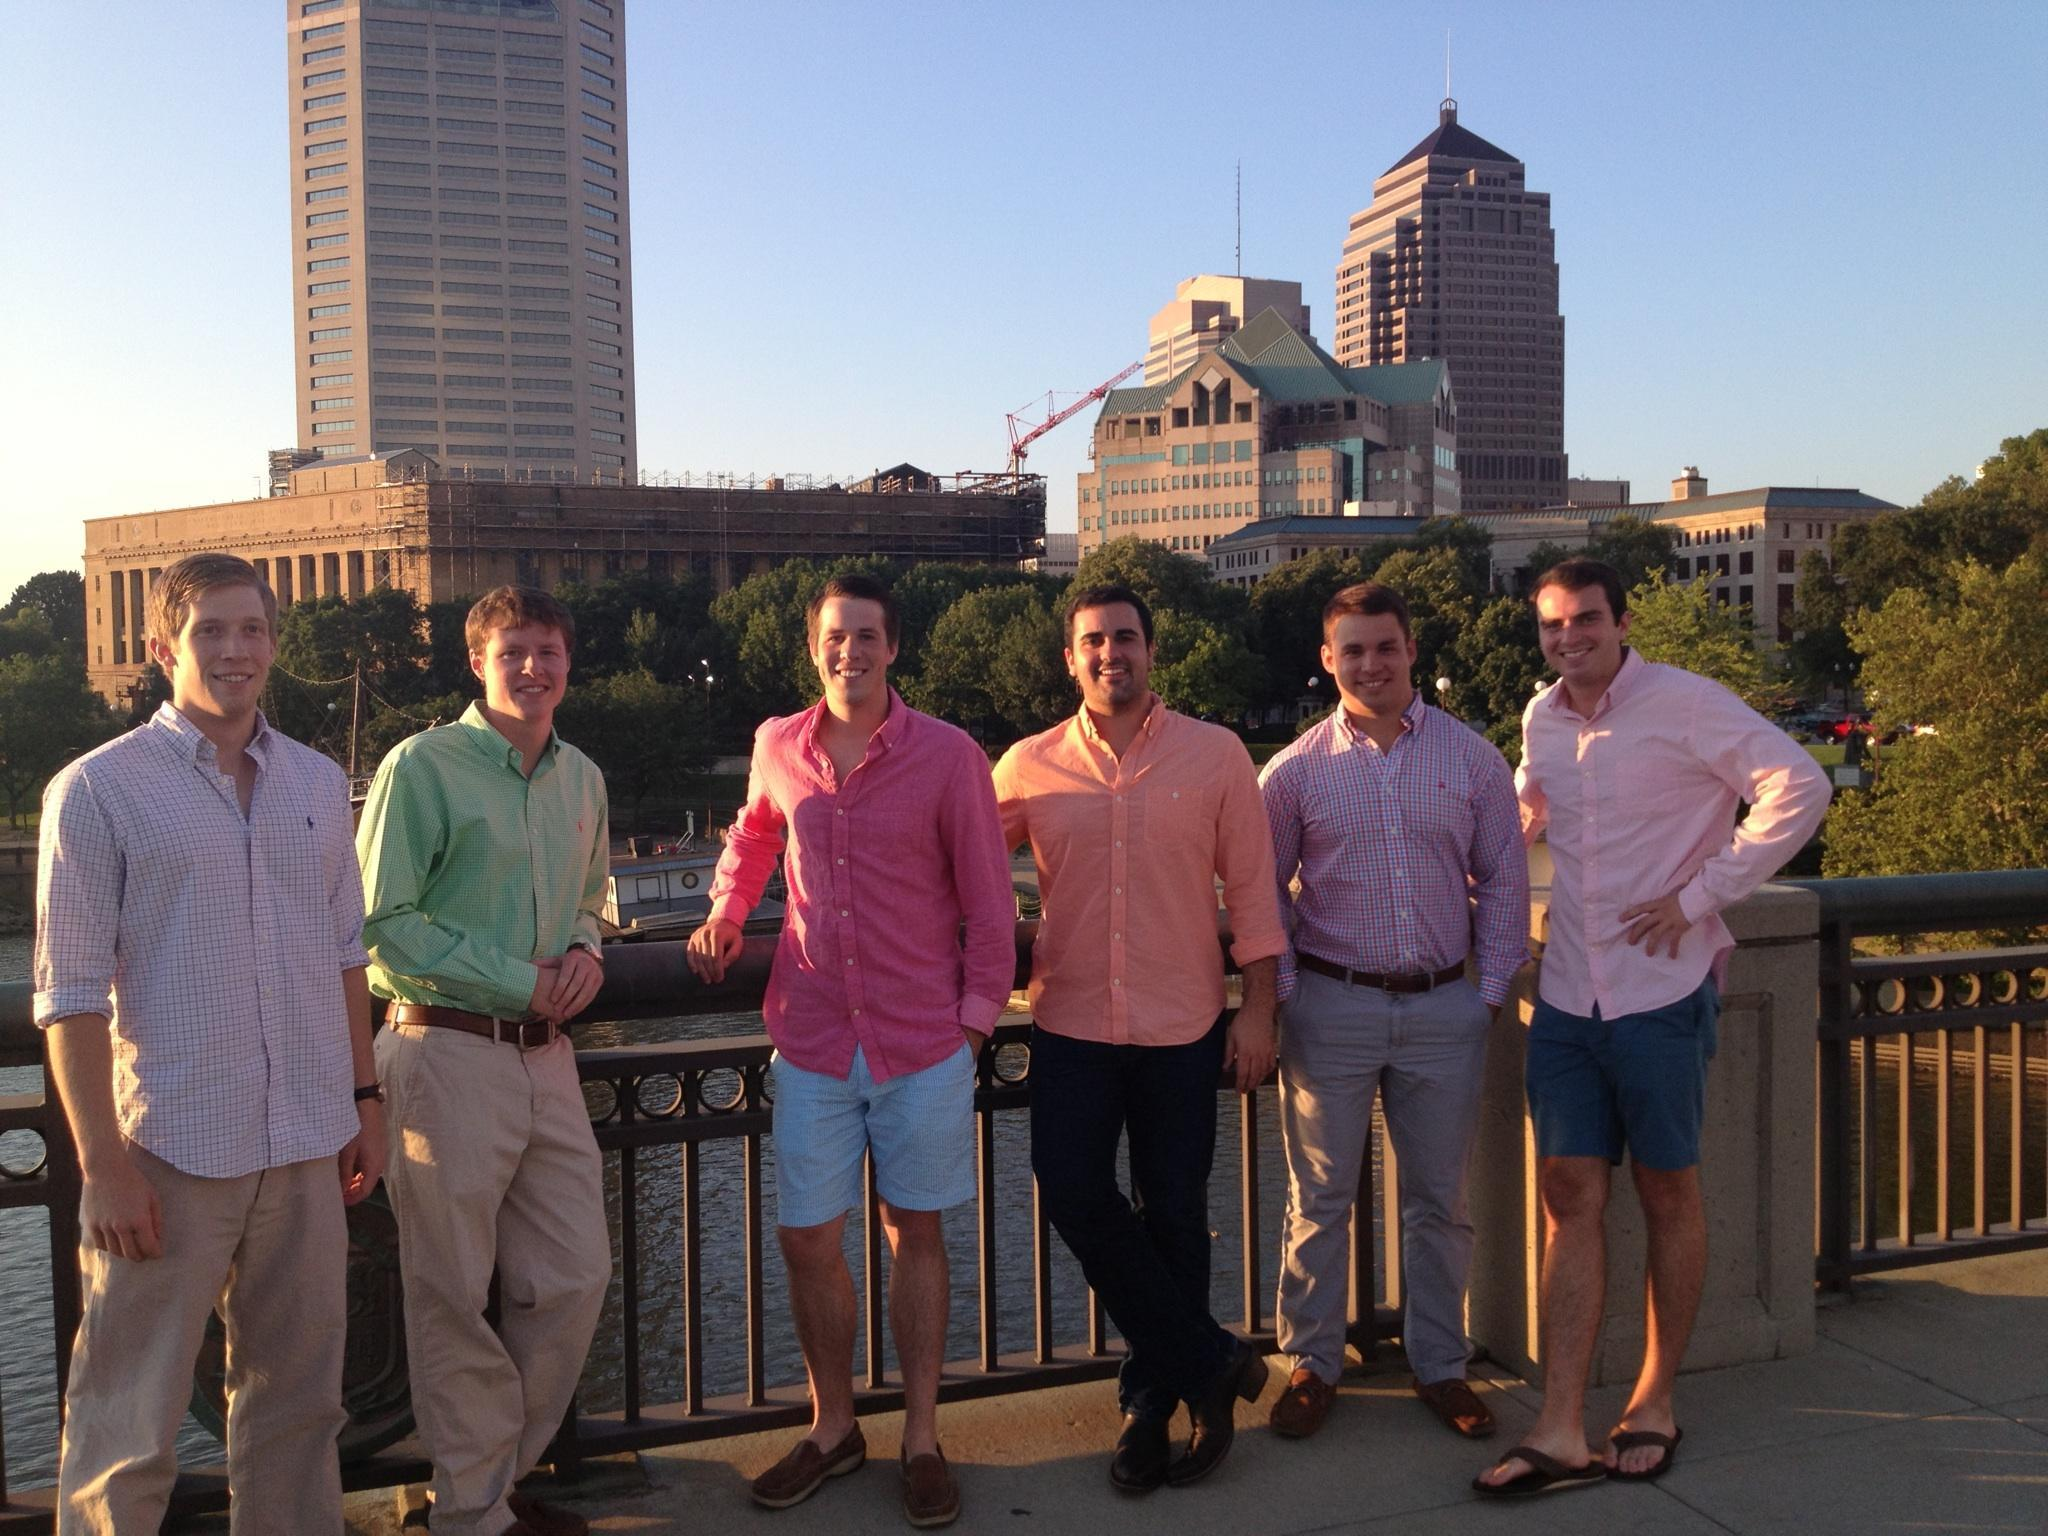 ATΩbrothers attend an Alumni's birthday party on the Santa Maria.